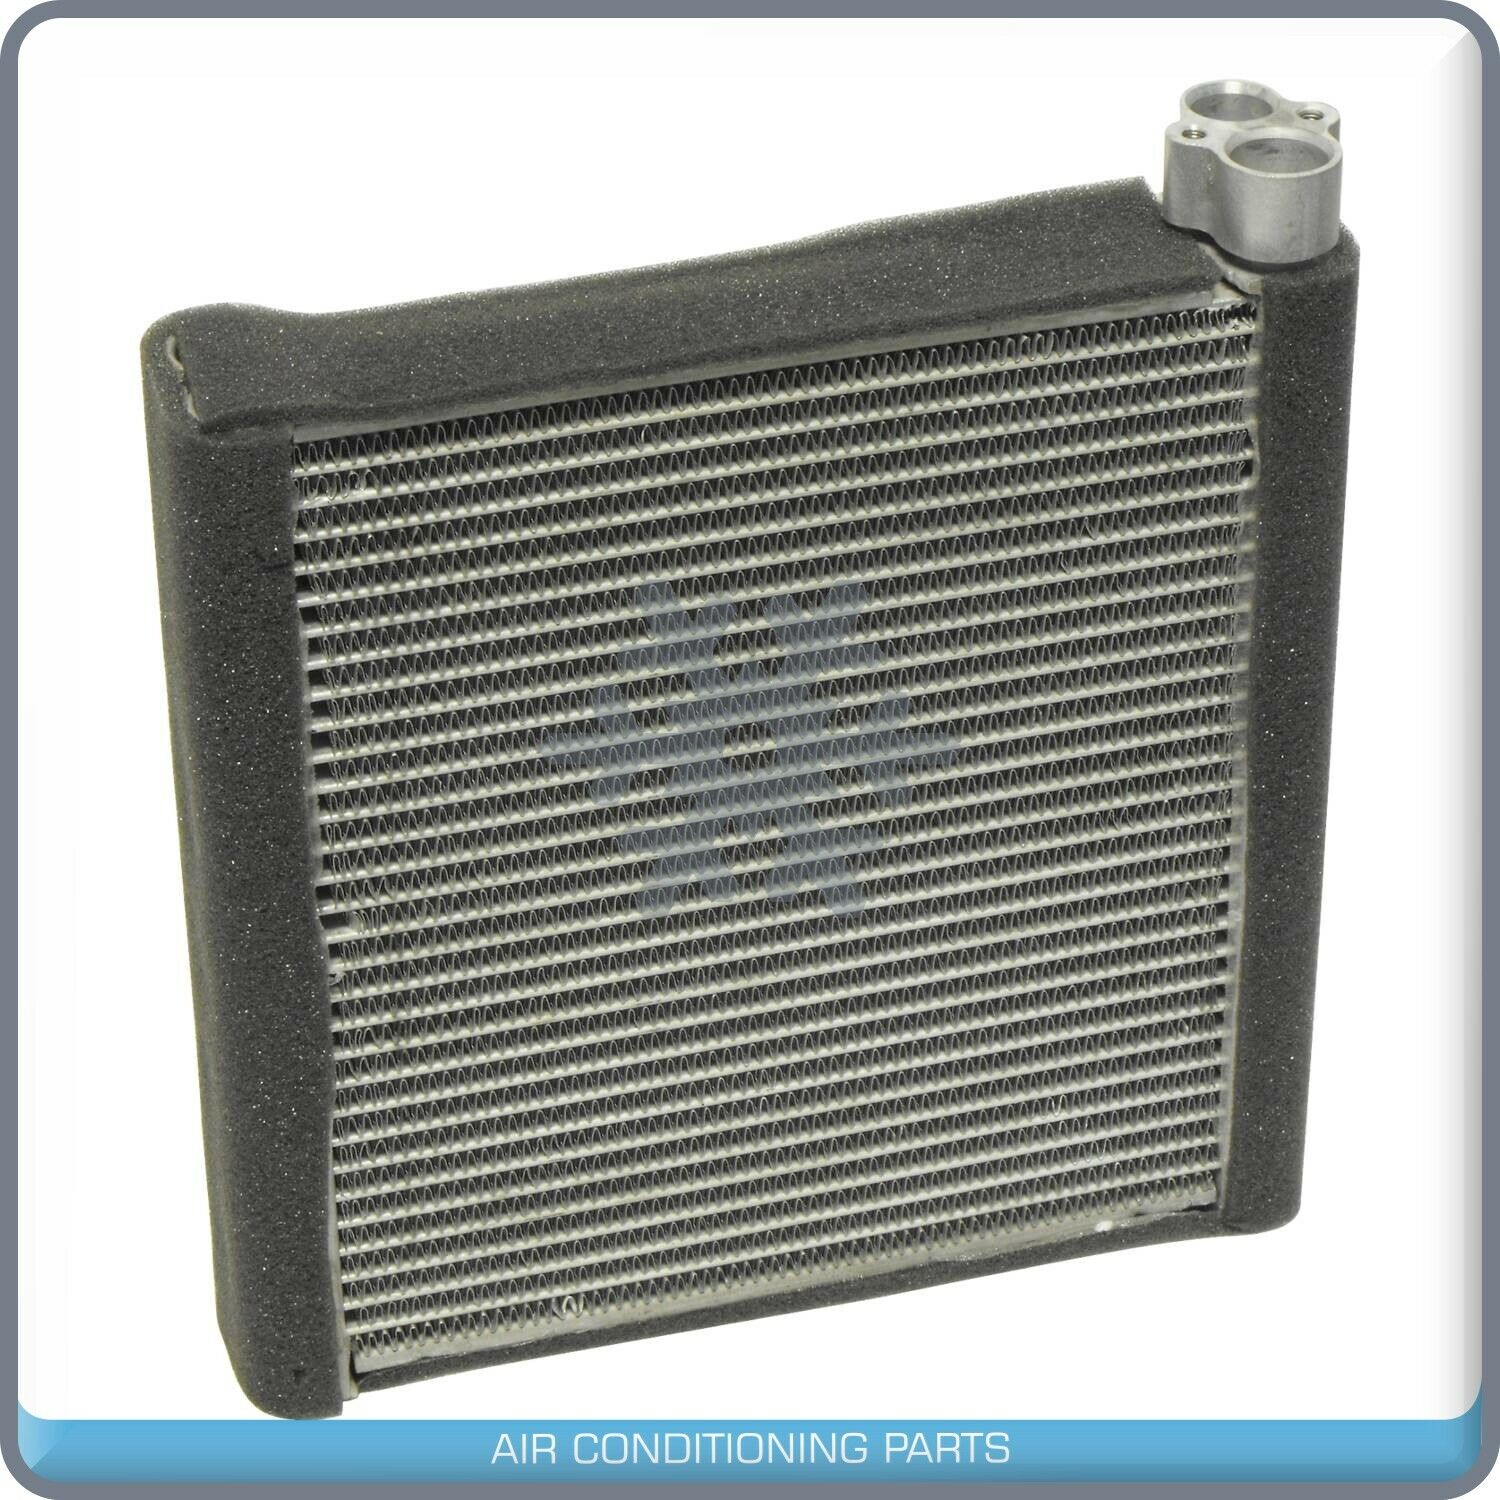 New A/C Evaporator Core for Honda Fit 2009 to 2014 - OE ...